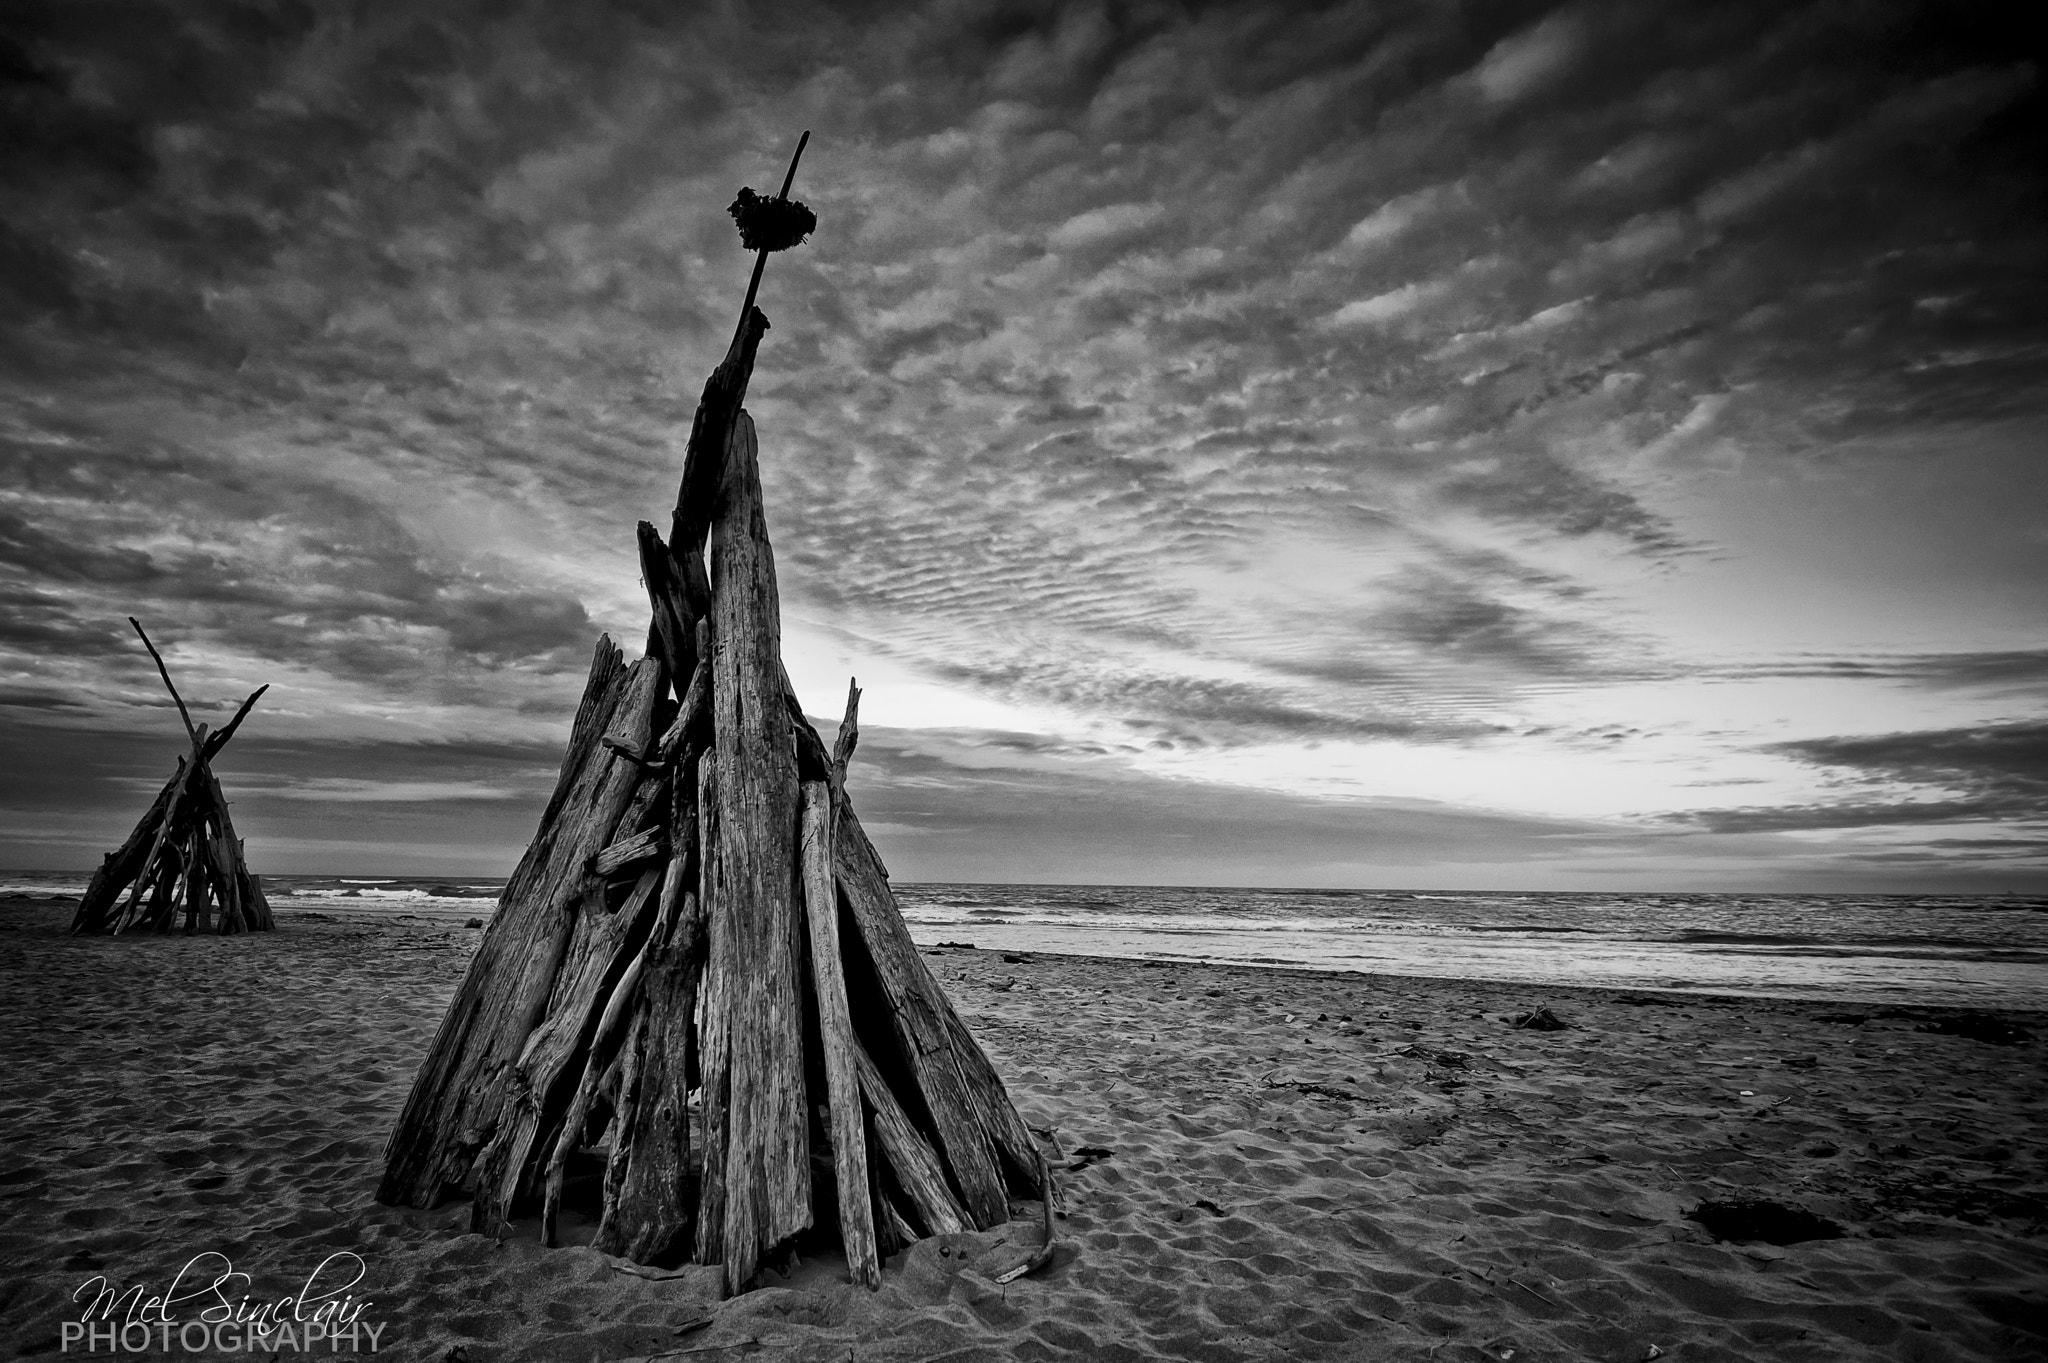 Photograph Two Teepee's by Mel Sinclair on 500px